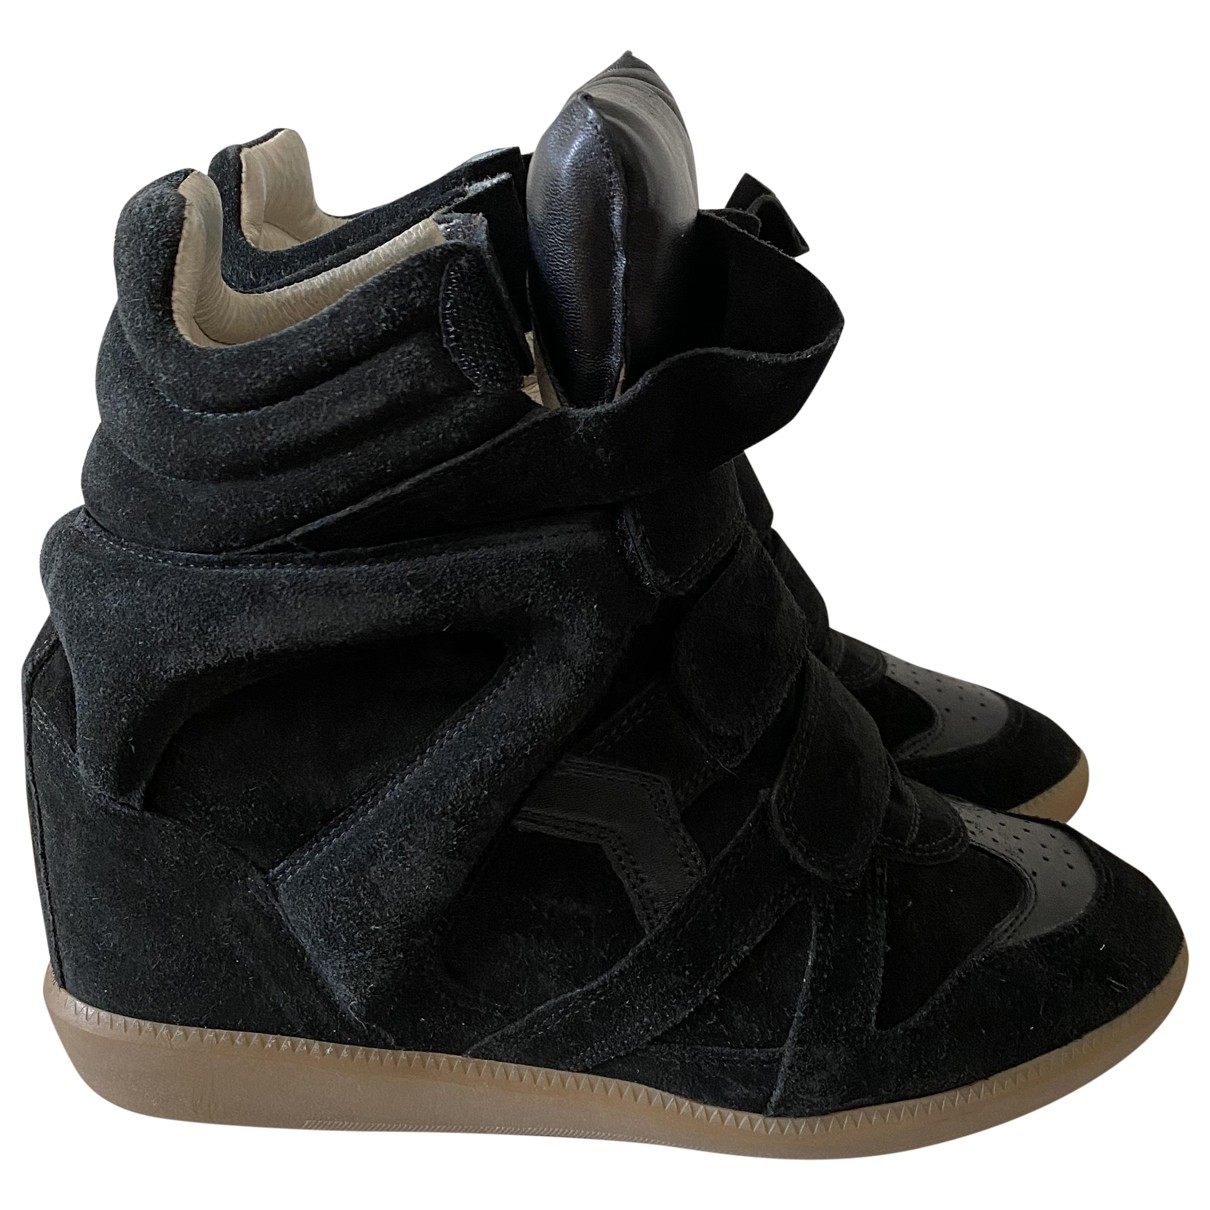 Isabel Marant Beckett Black Suede Trainers for Women 40 EU